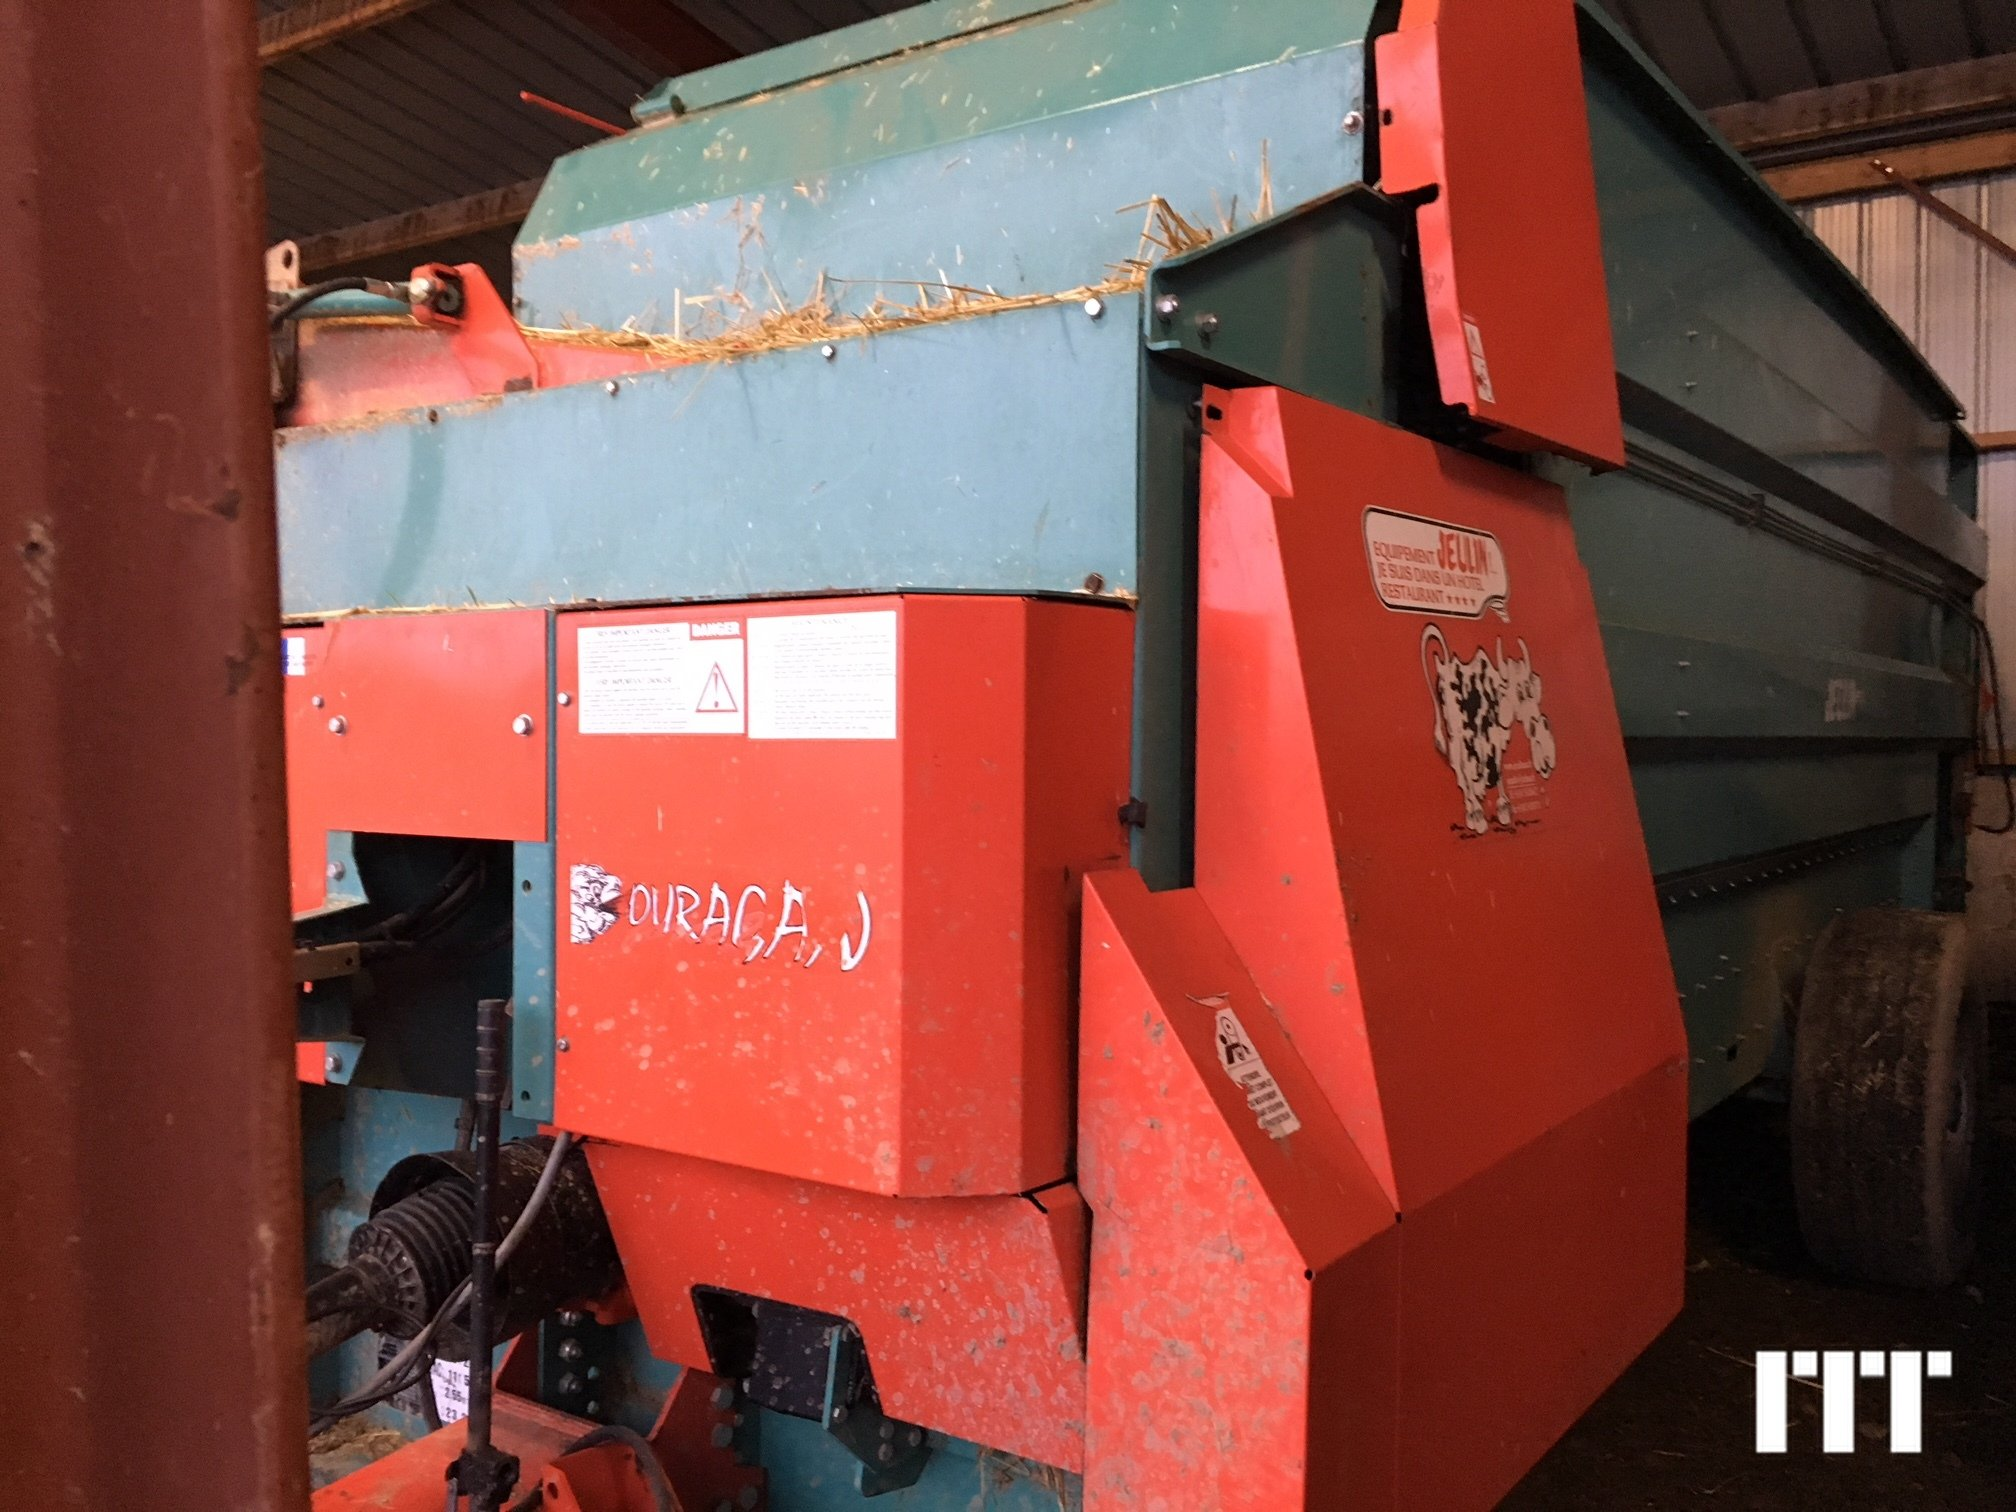 Straw shredder Jeulin DIVERS/VARIOS - 1